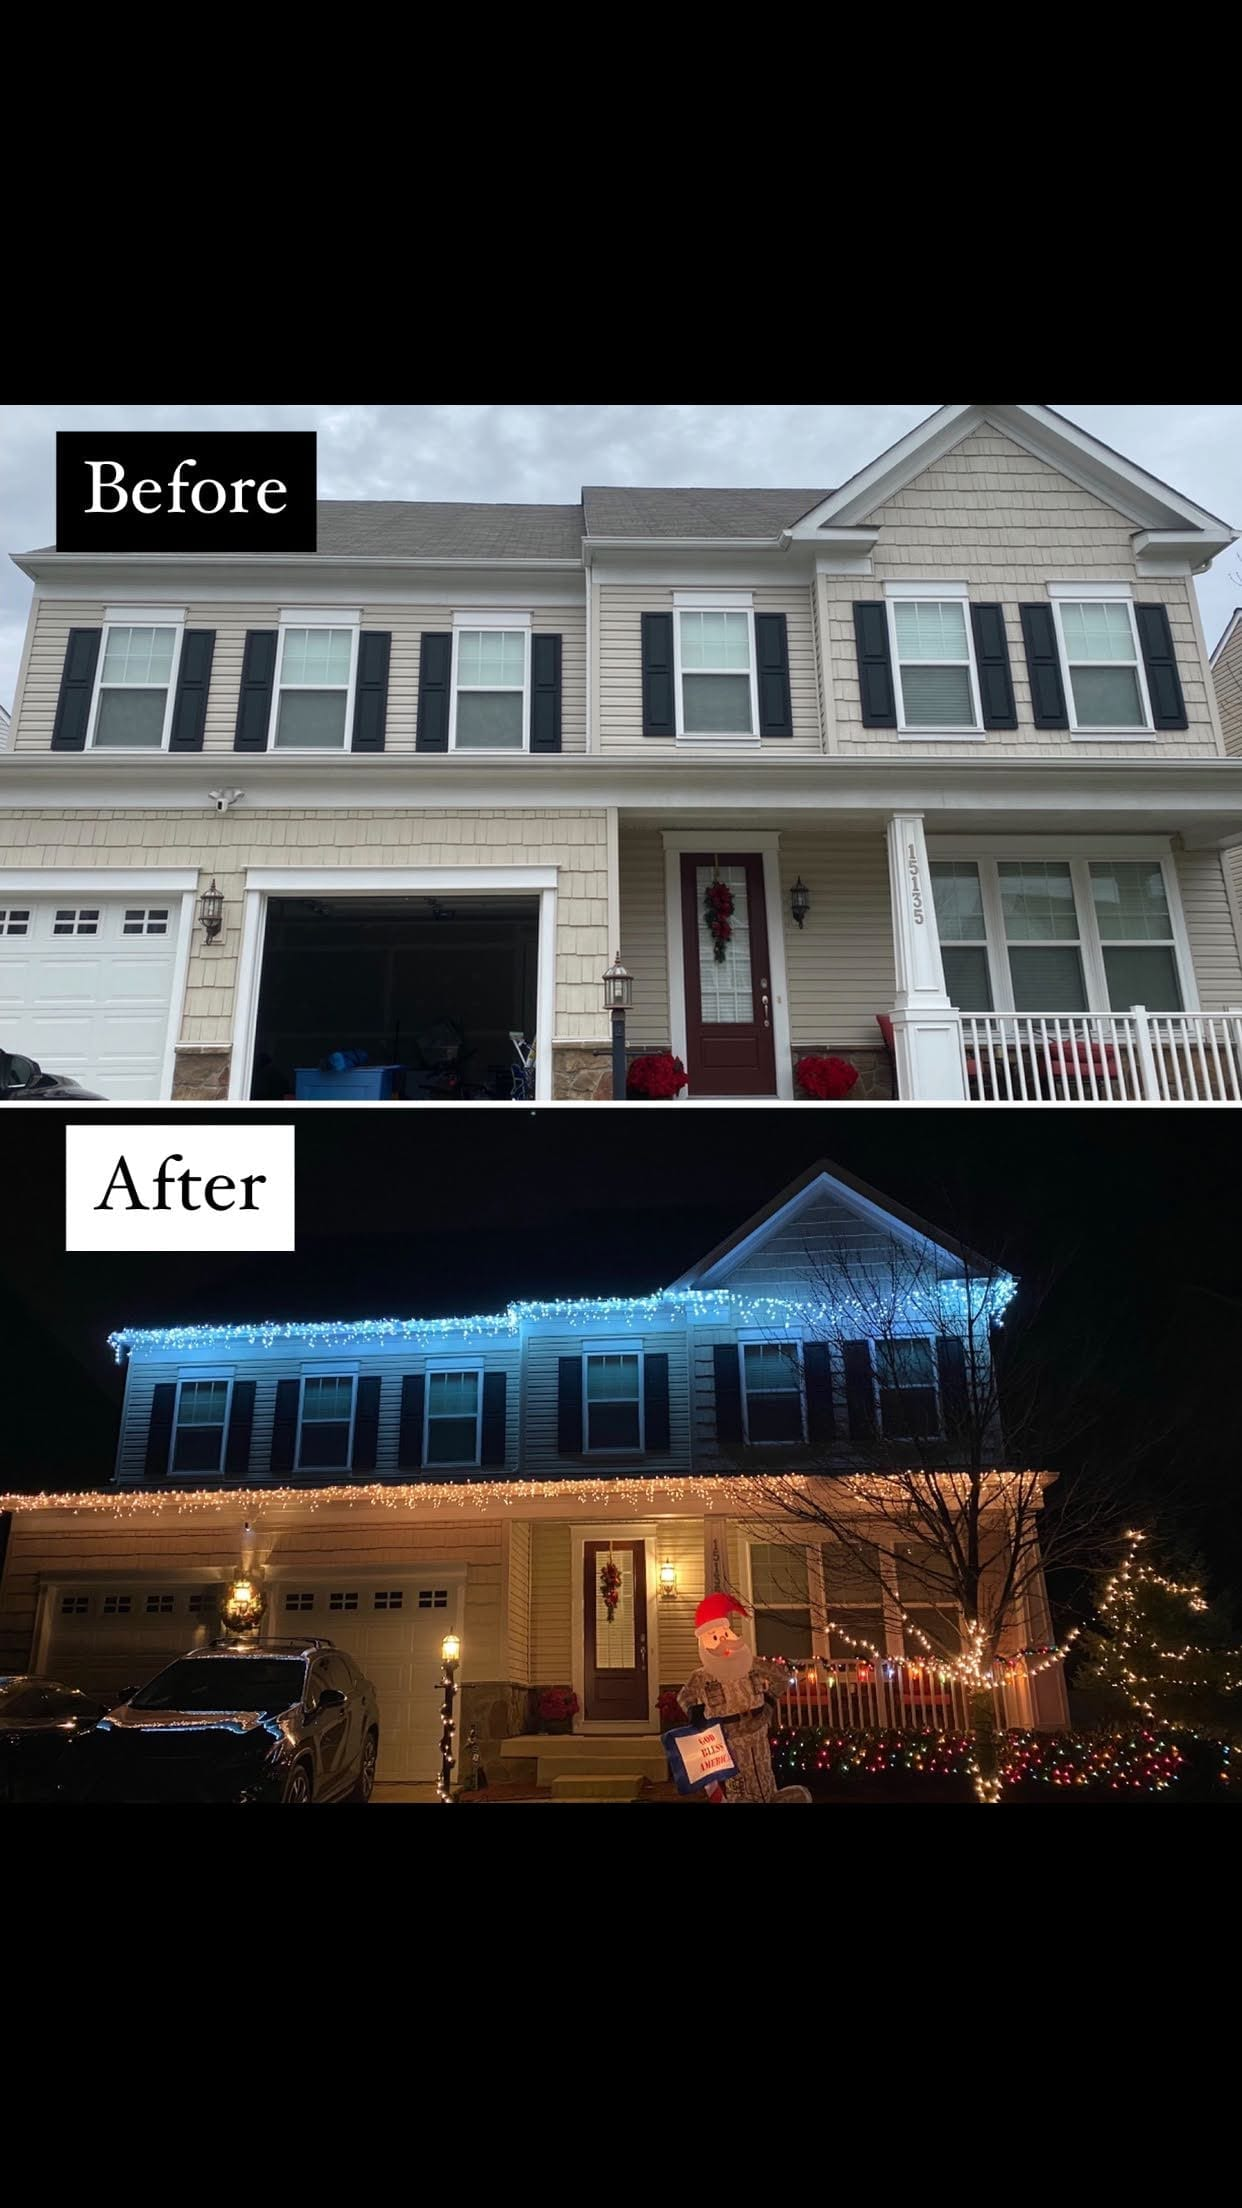 Christmas Lights Before and After